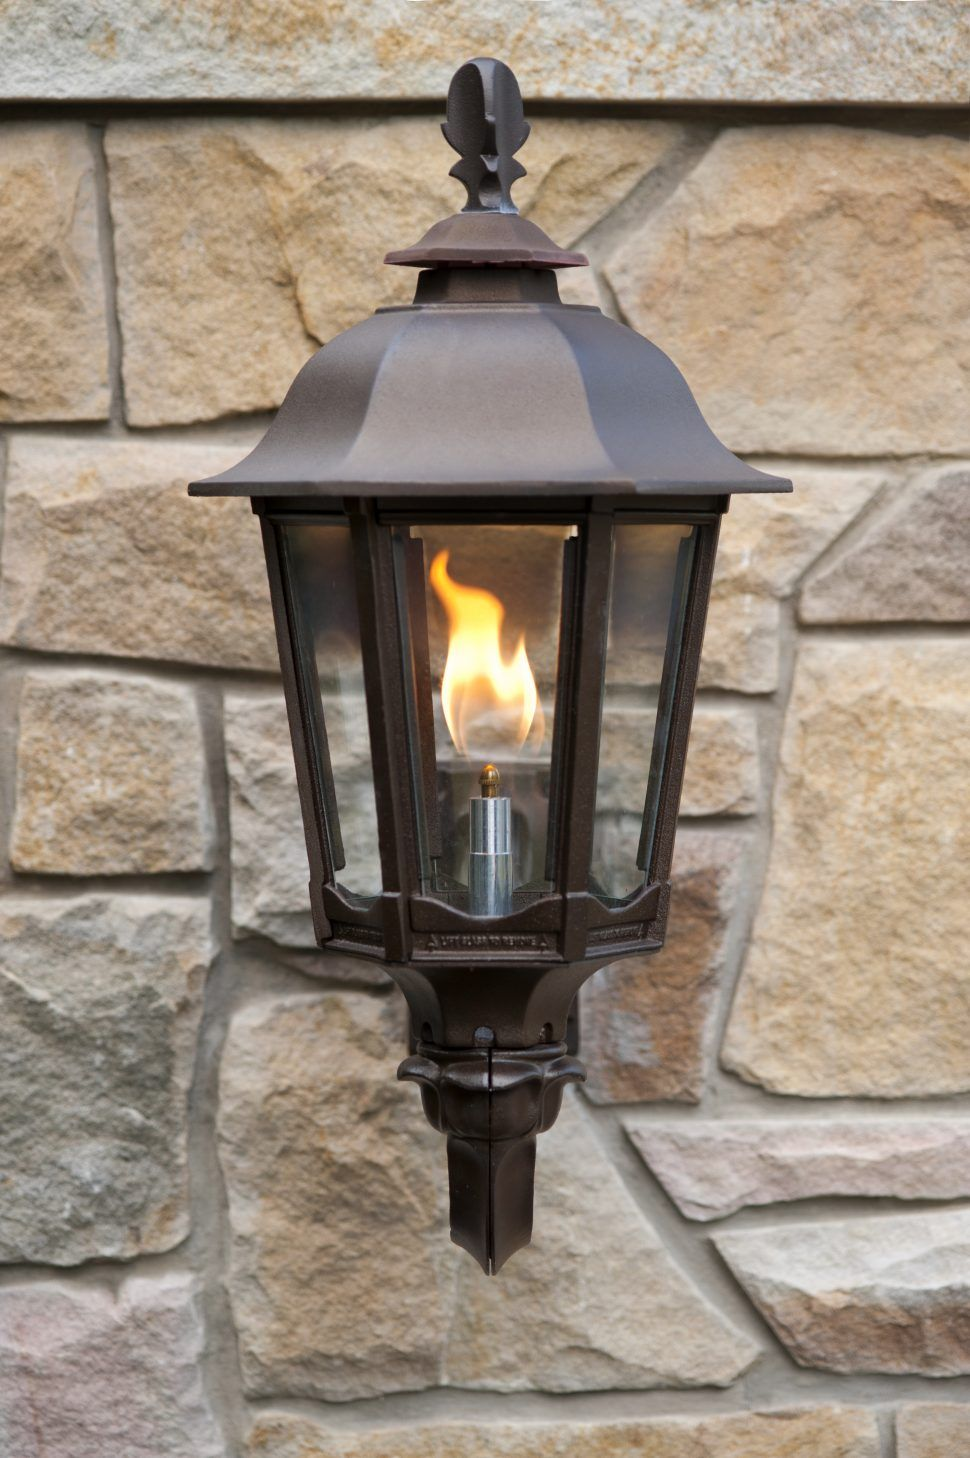 Fireplace Incredible Gaslight Lamp Home Decorating Outdoor